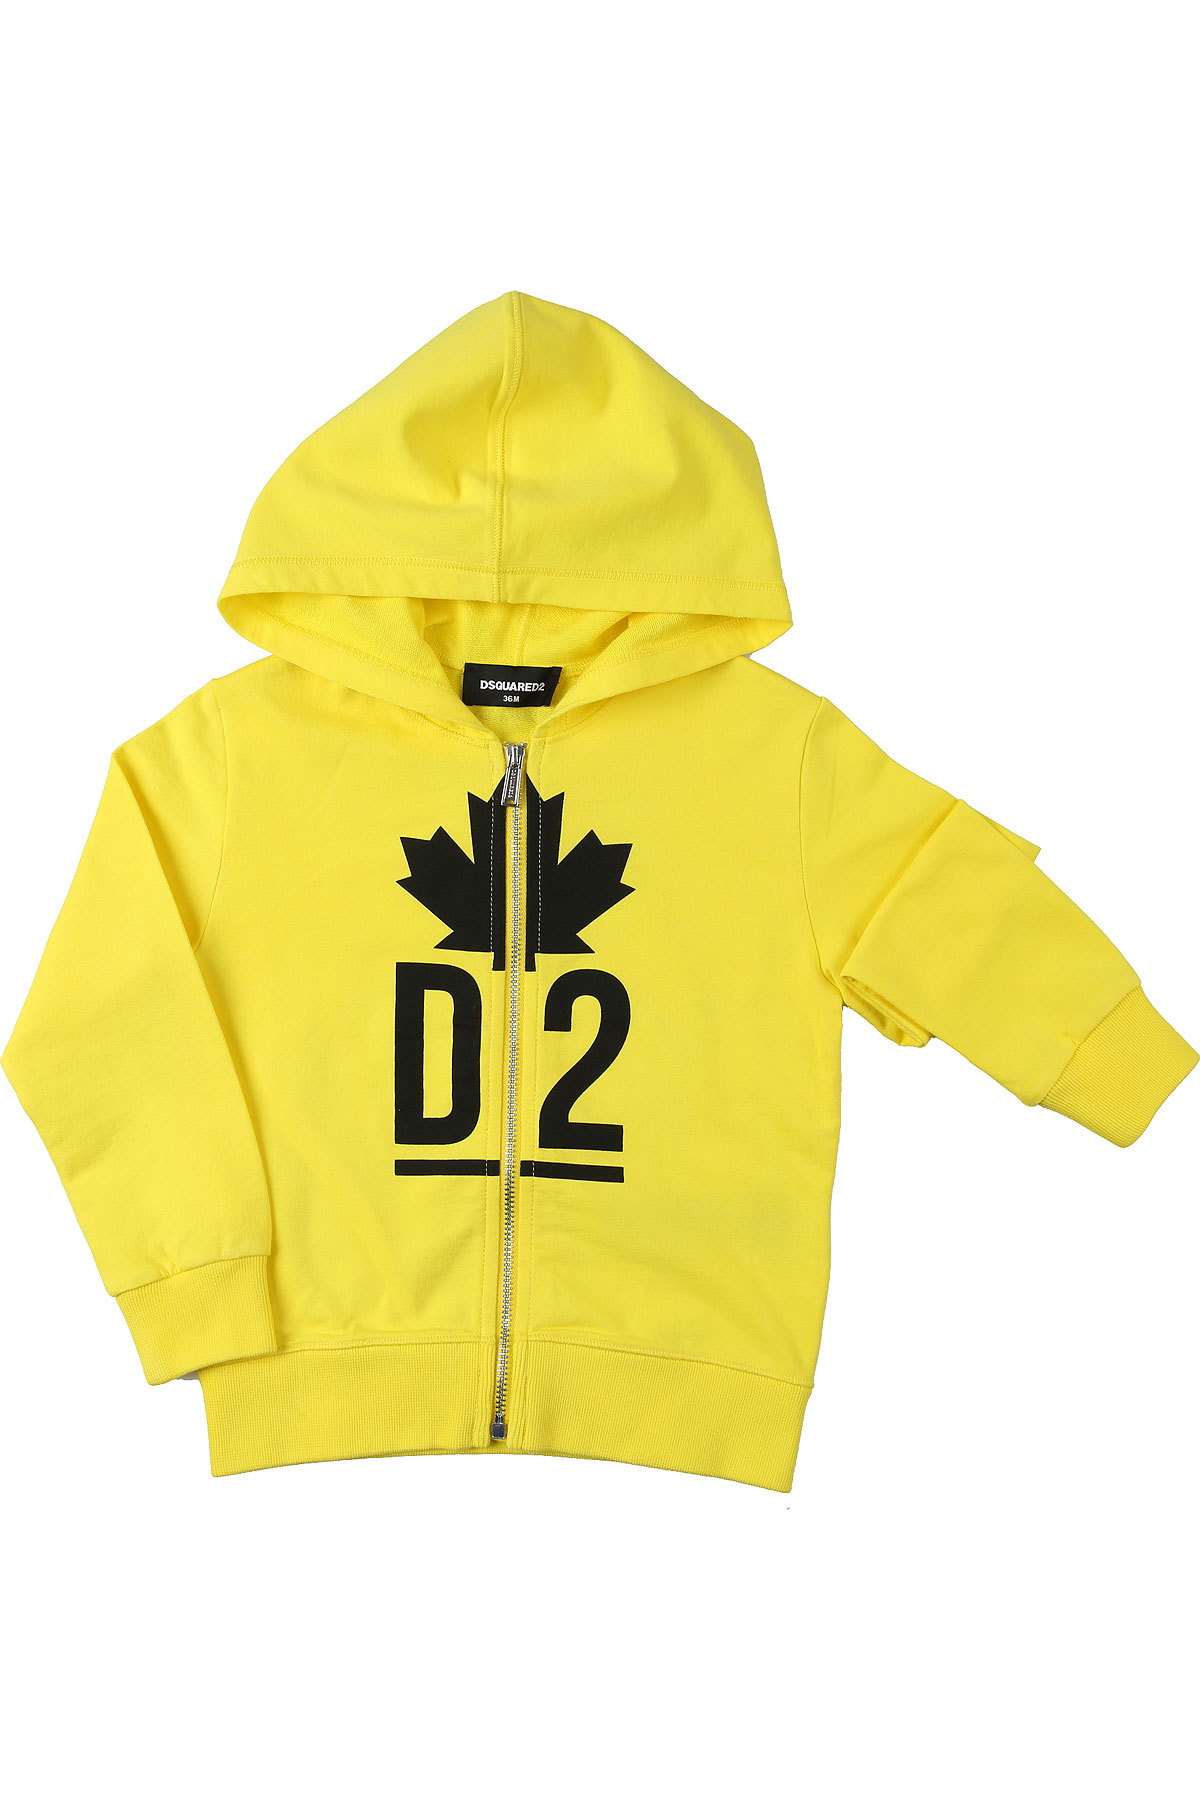 Dsquared2 Baby Sweatshirts & Hoodies for Boys On Sale, Yellow, Cotton, 2019, 12 M 18M 2Y 3Y 9M